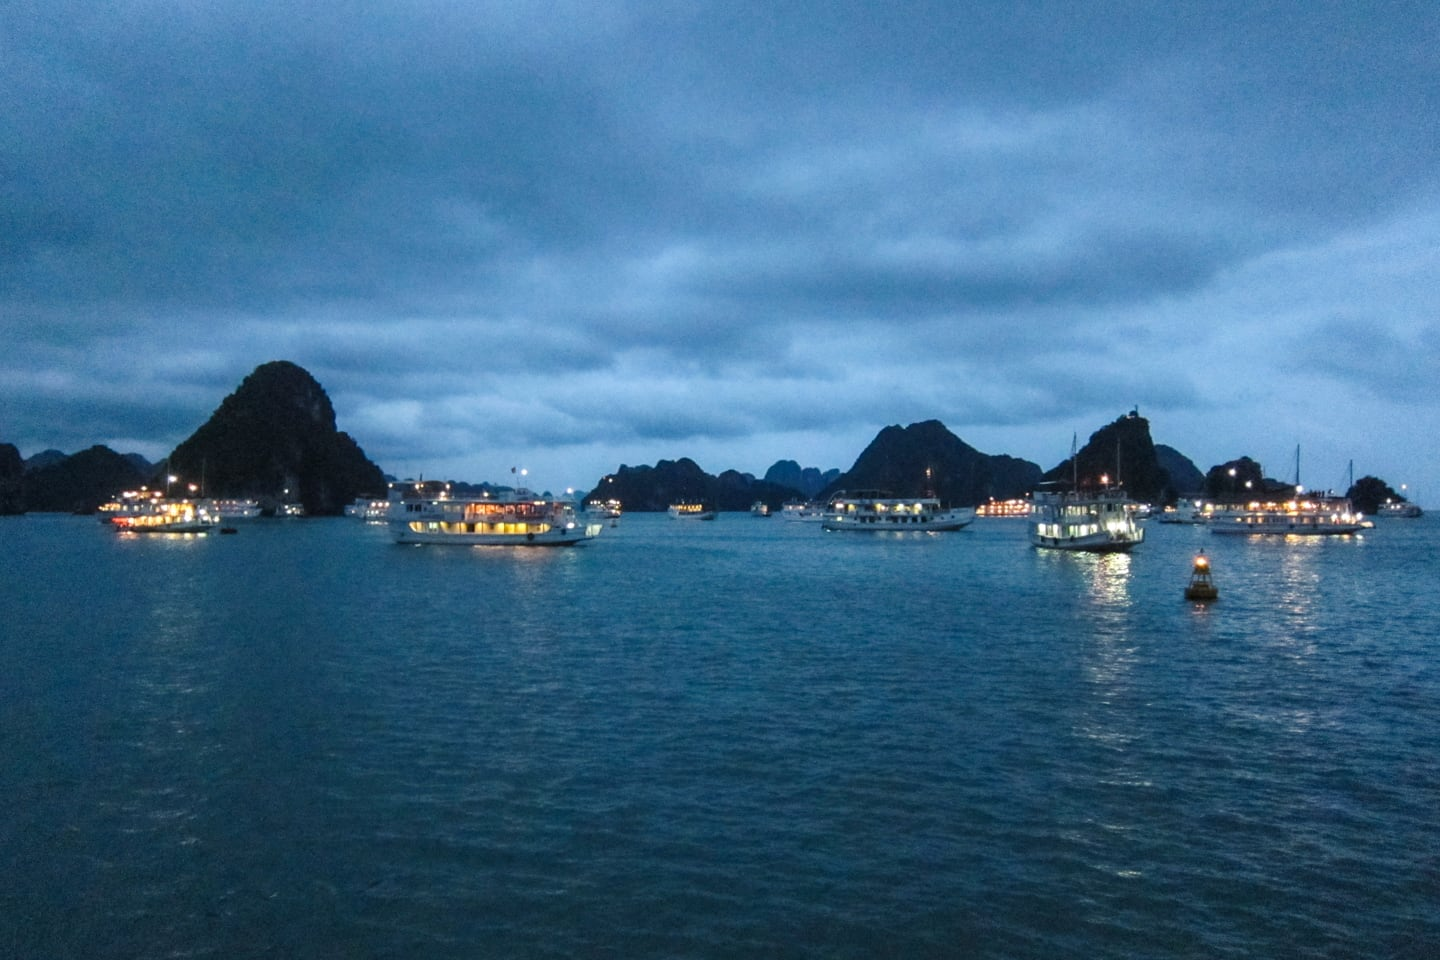 halong bay 3 day cruise at anchor in evening